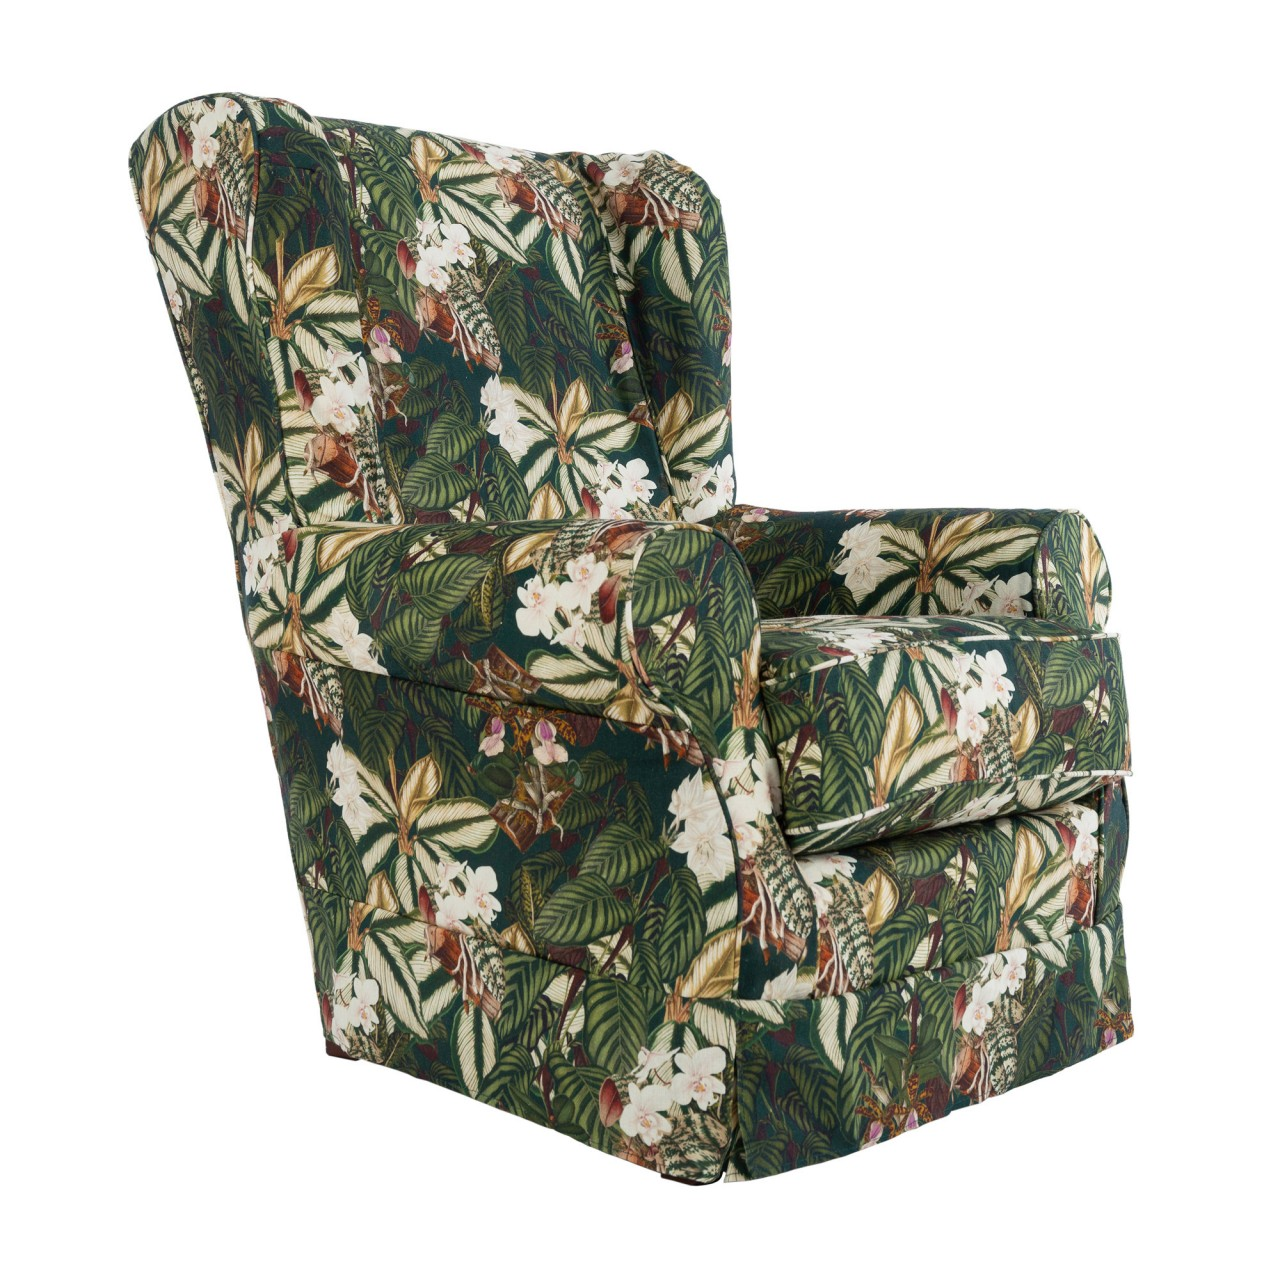 DAKOTA Skirted Chair - ORCHID BLOOM Linen